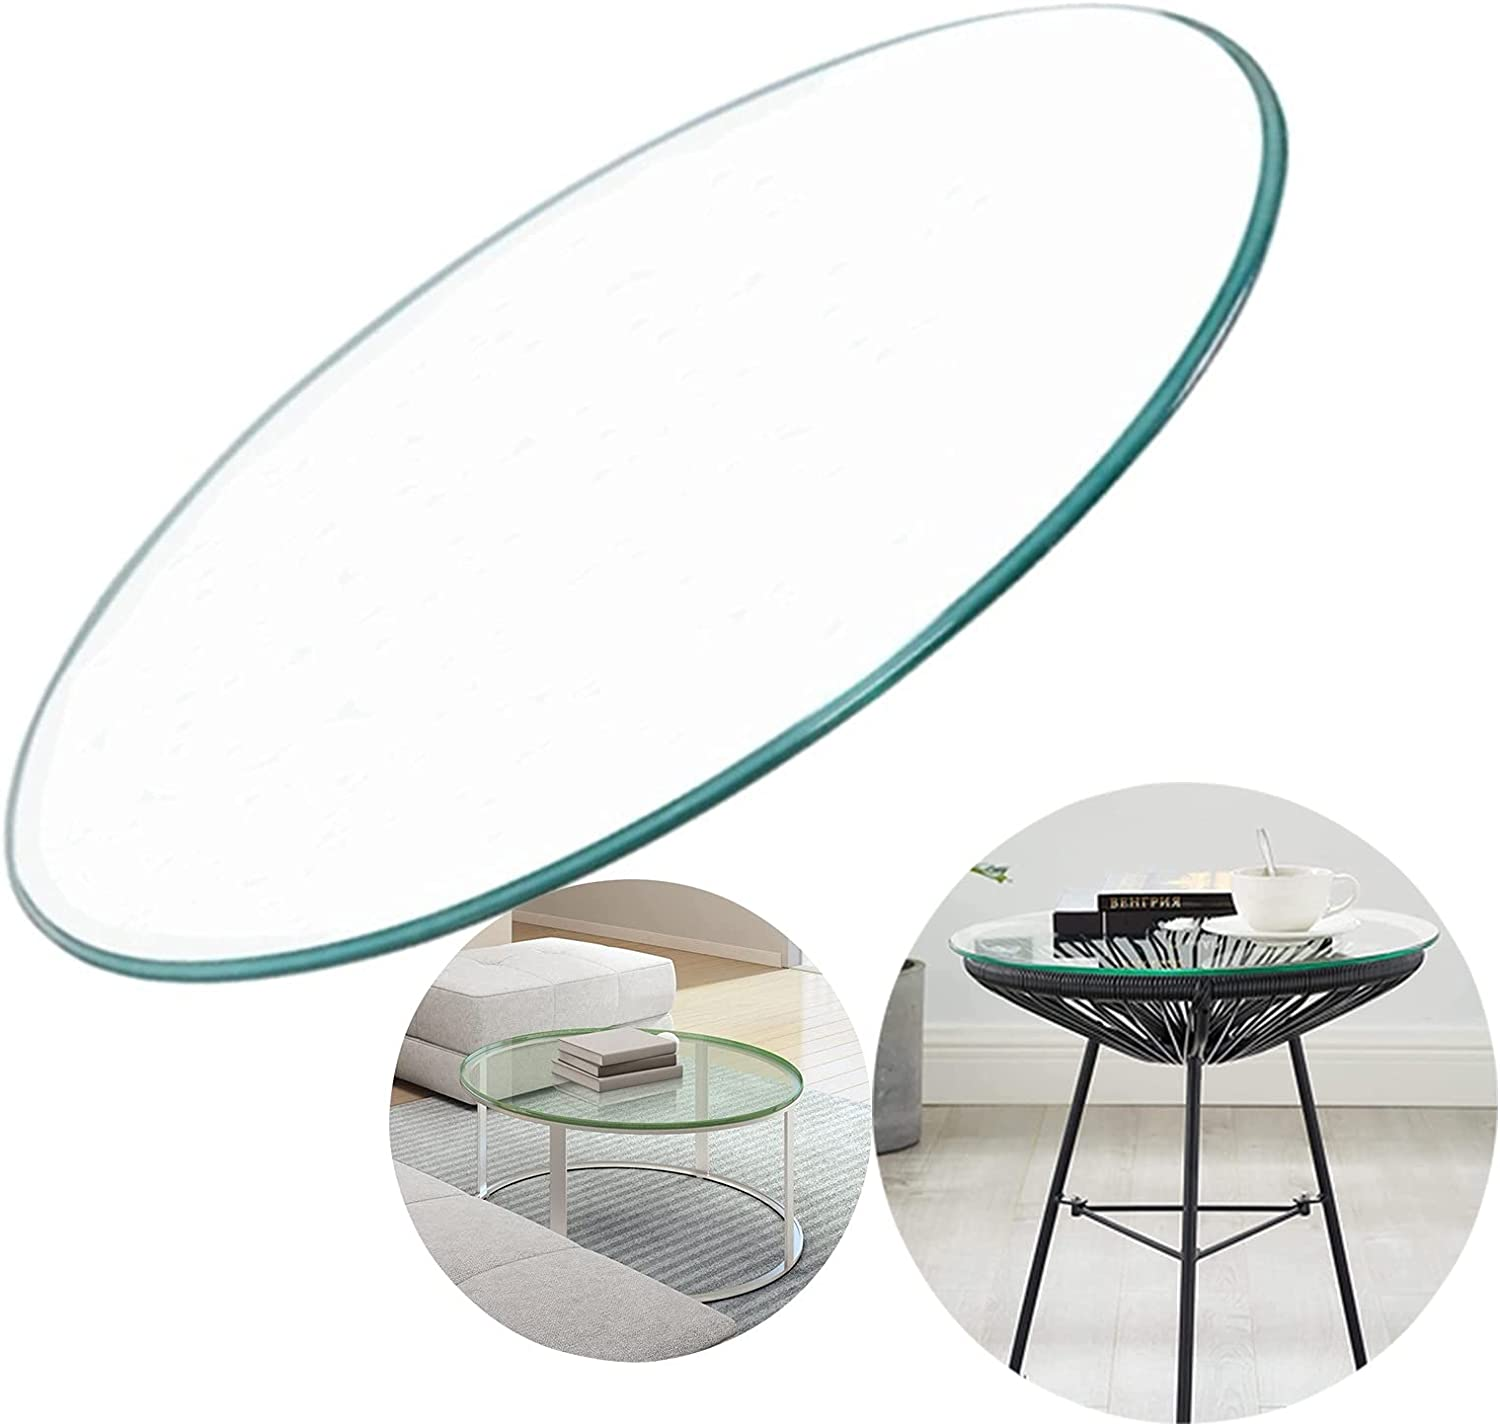 Tempered Glass Table Top Outdoor9 Dallas Mall Trust Mm T Broken Thick Easily Not